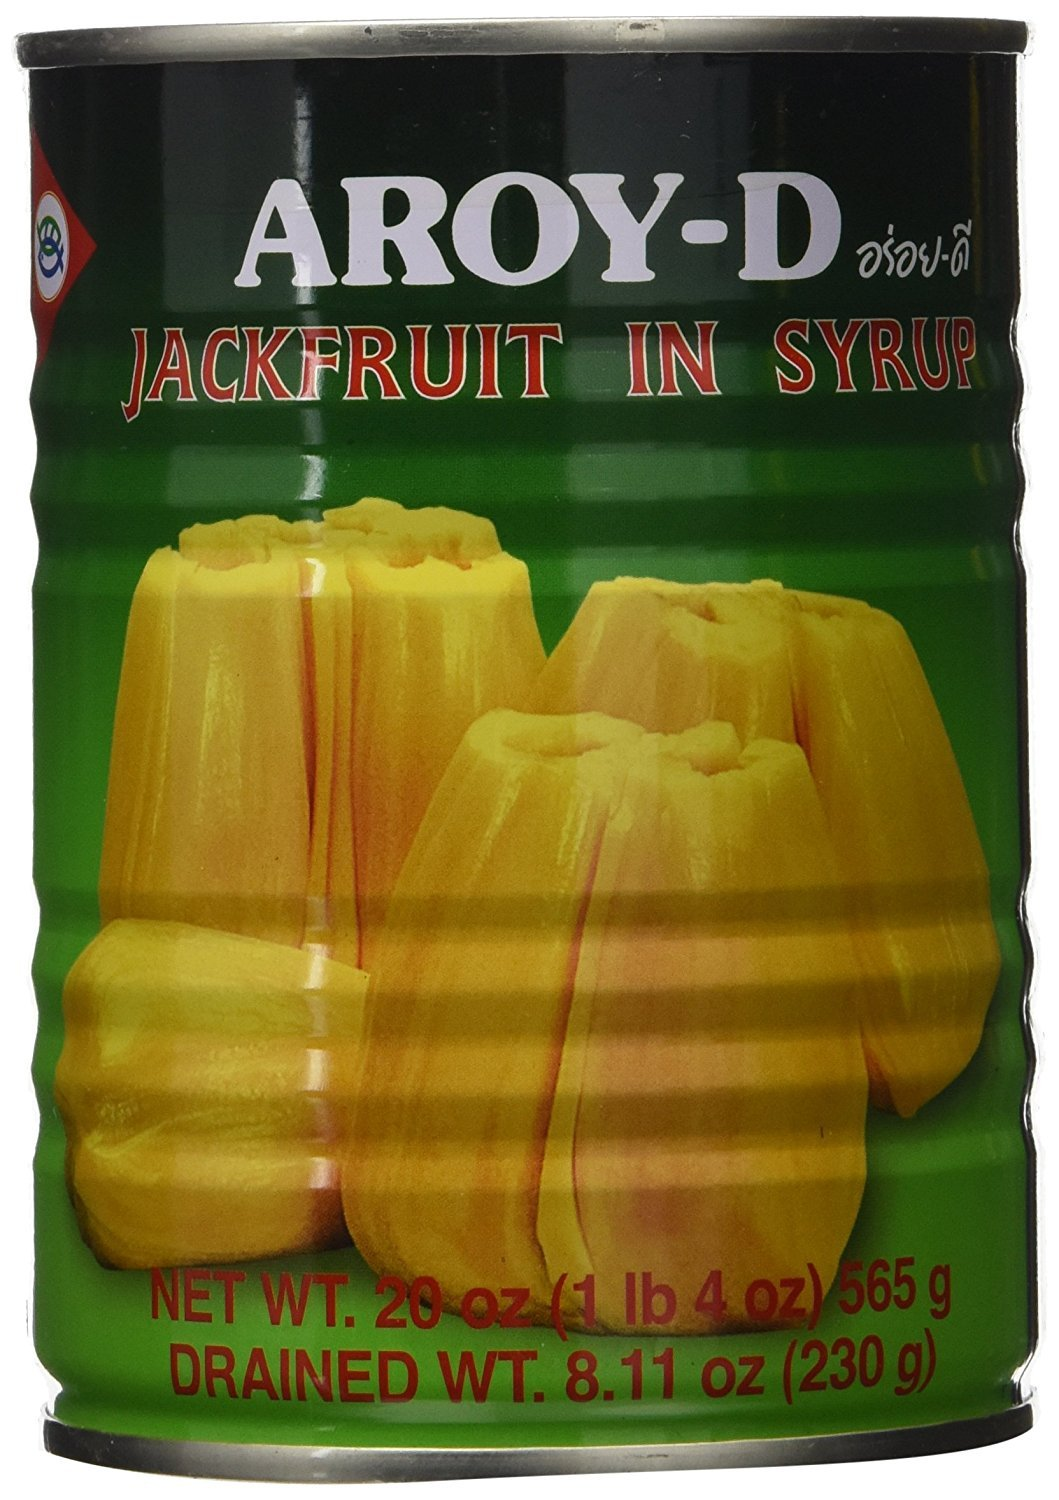 Aroy-D Jackfruit in Syrup, 20 Ounce (Pack of 6) by Aroy-D